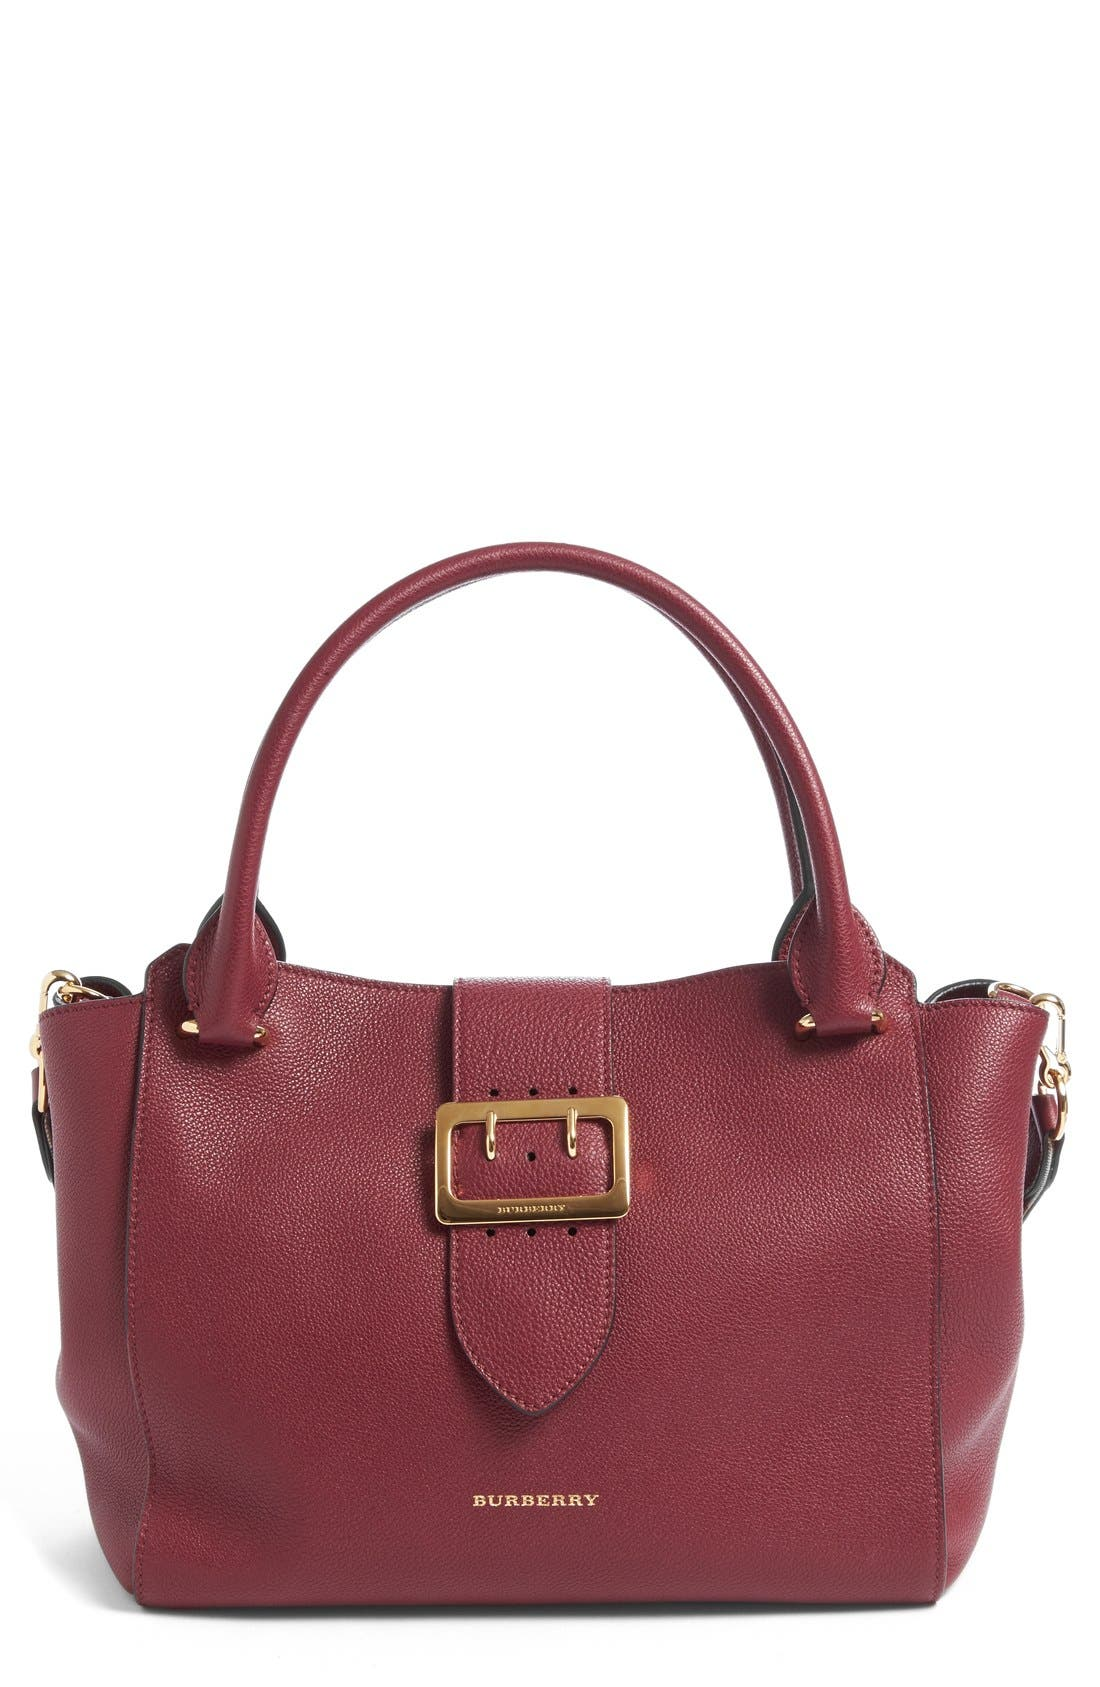 Burberry Medium Buckle Leather Satchel